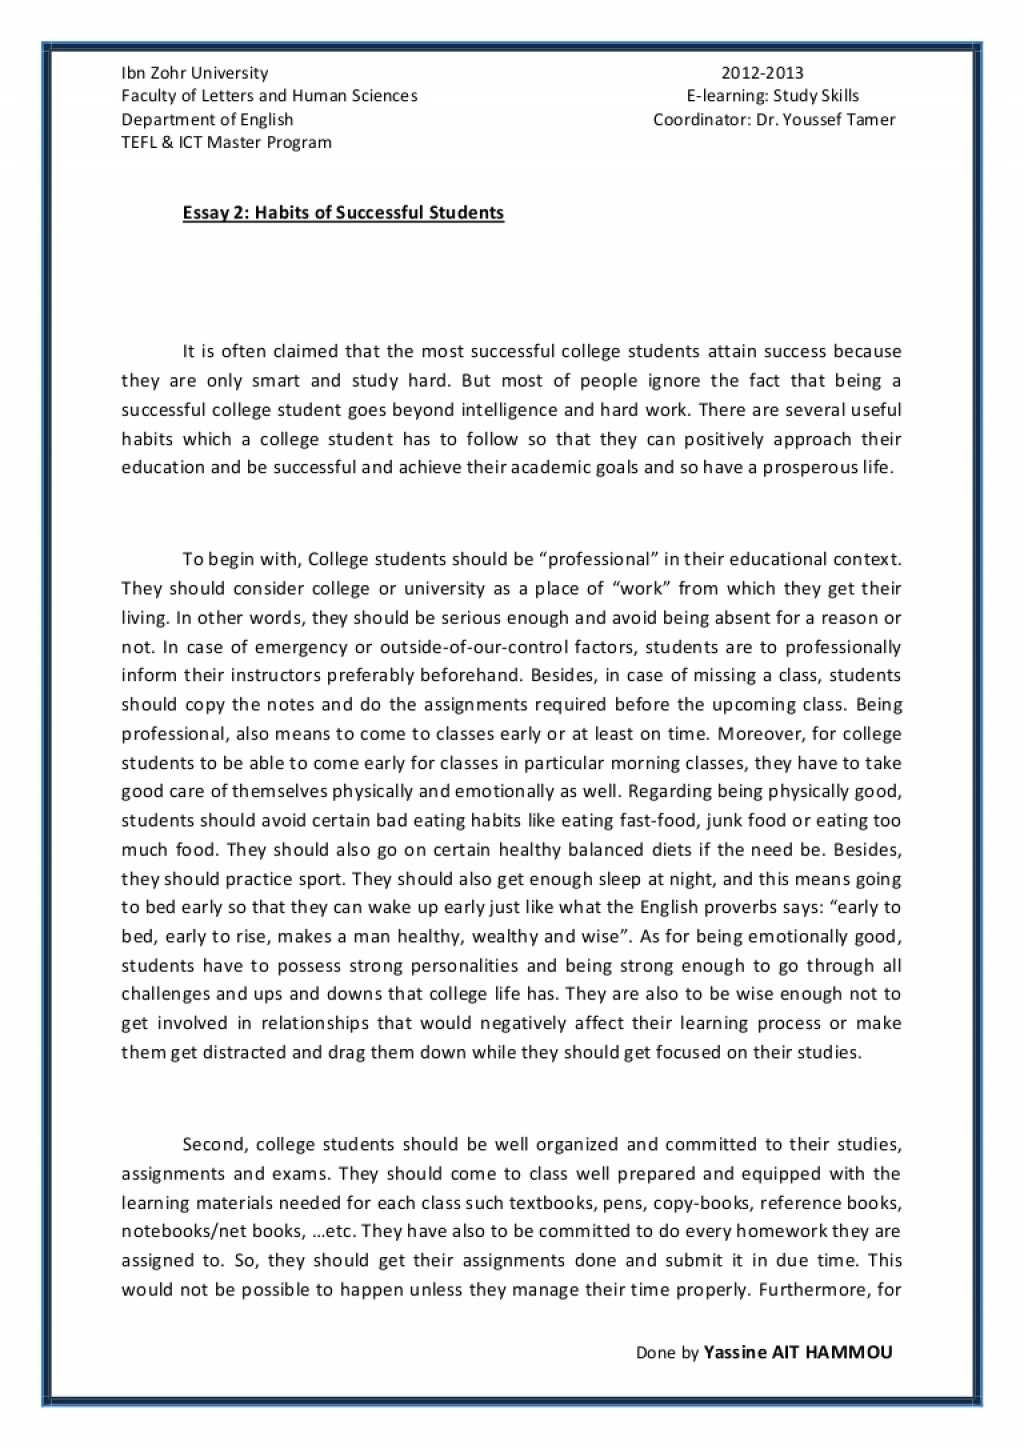 008 How Long Is Short Essay Essay2 Succesfulcollegestudentshabitsbyyassineaithammou Phpapp01 Thumbnail Incredible A What Story In High School Answer Large